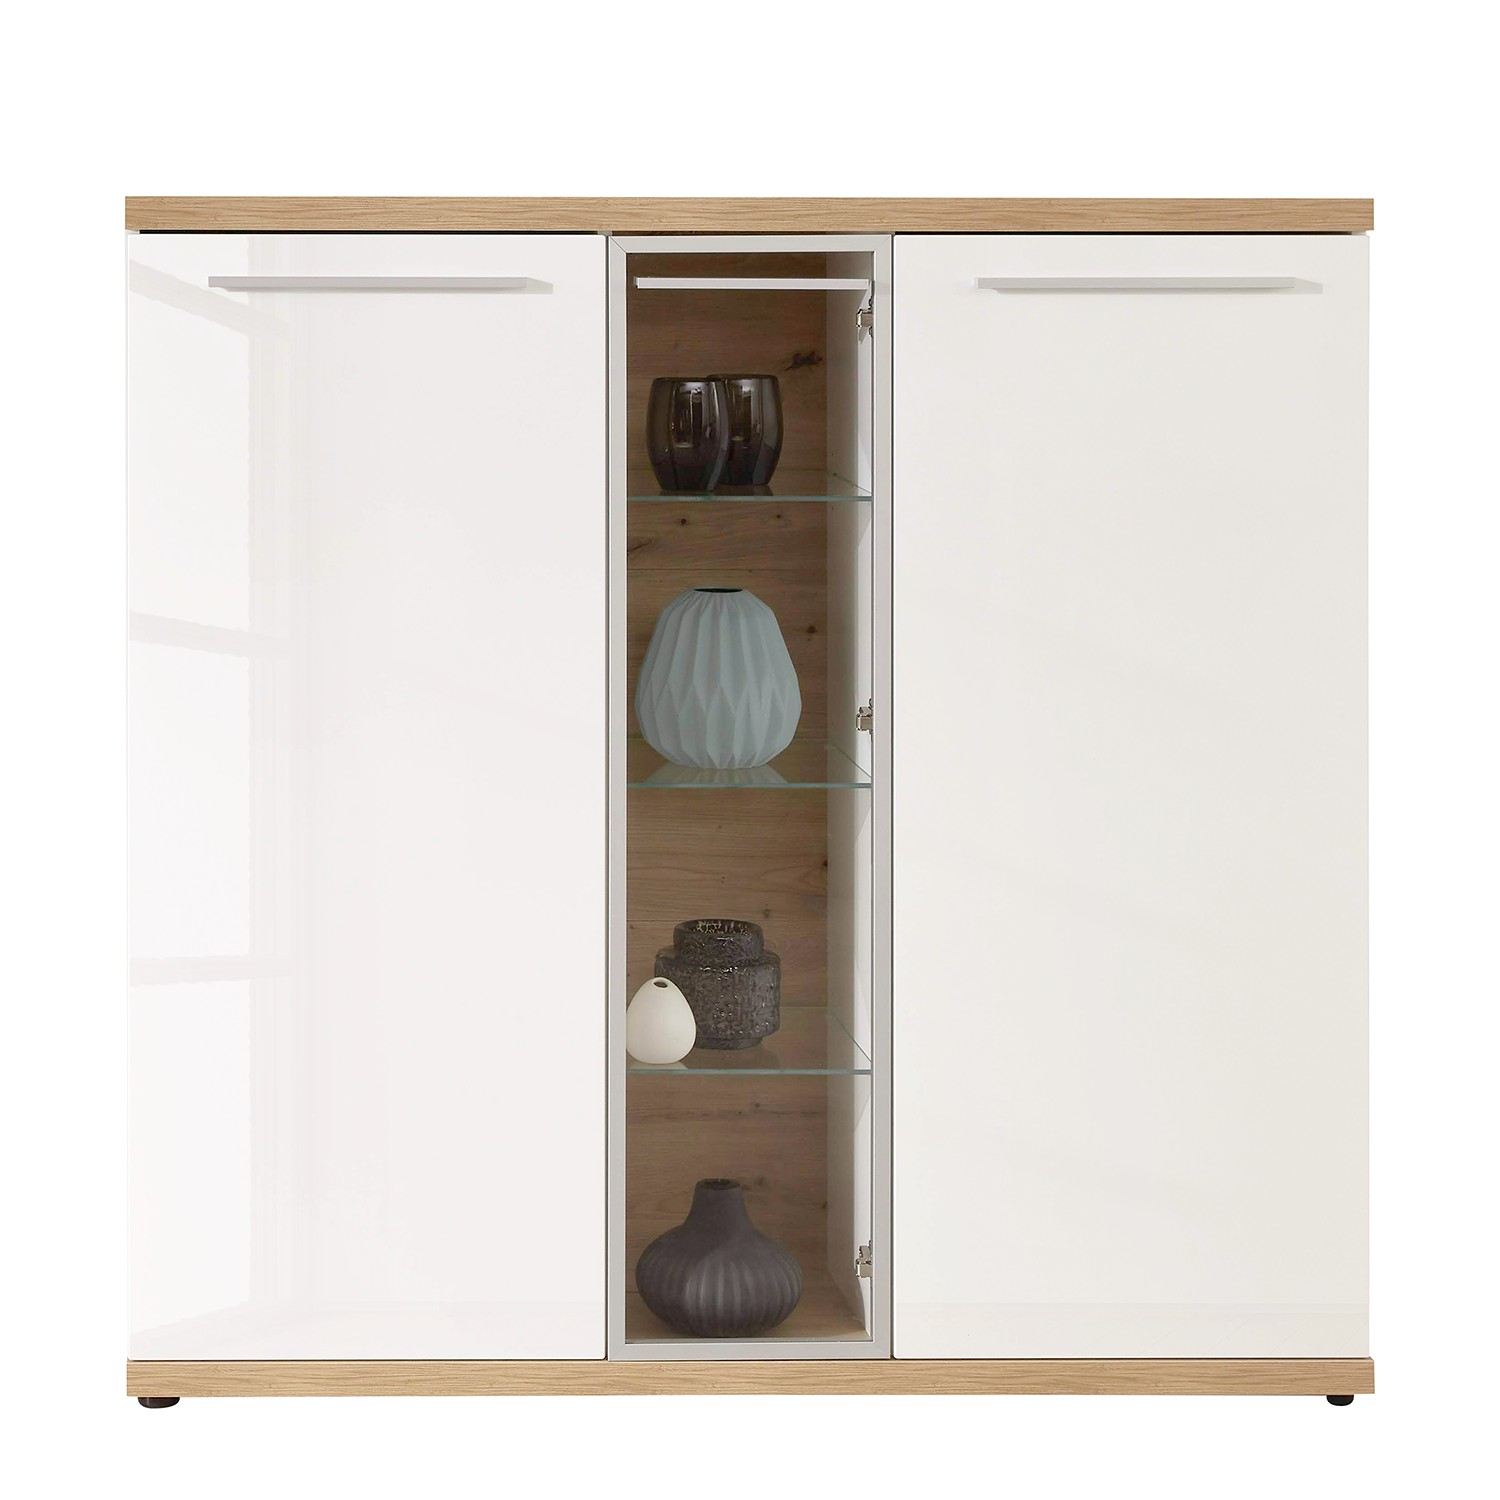 Highboard ODINO von TRENDTEAM